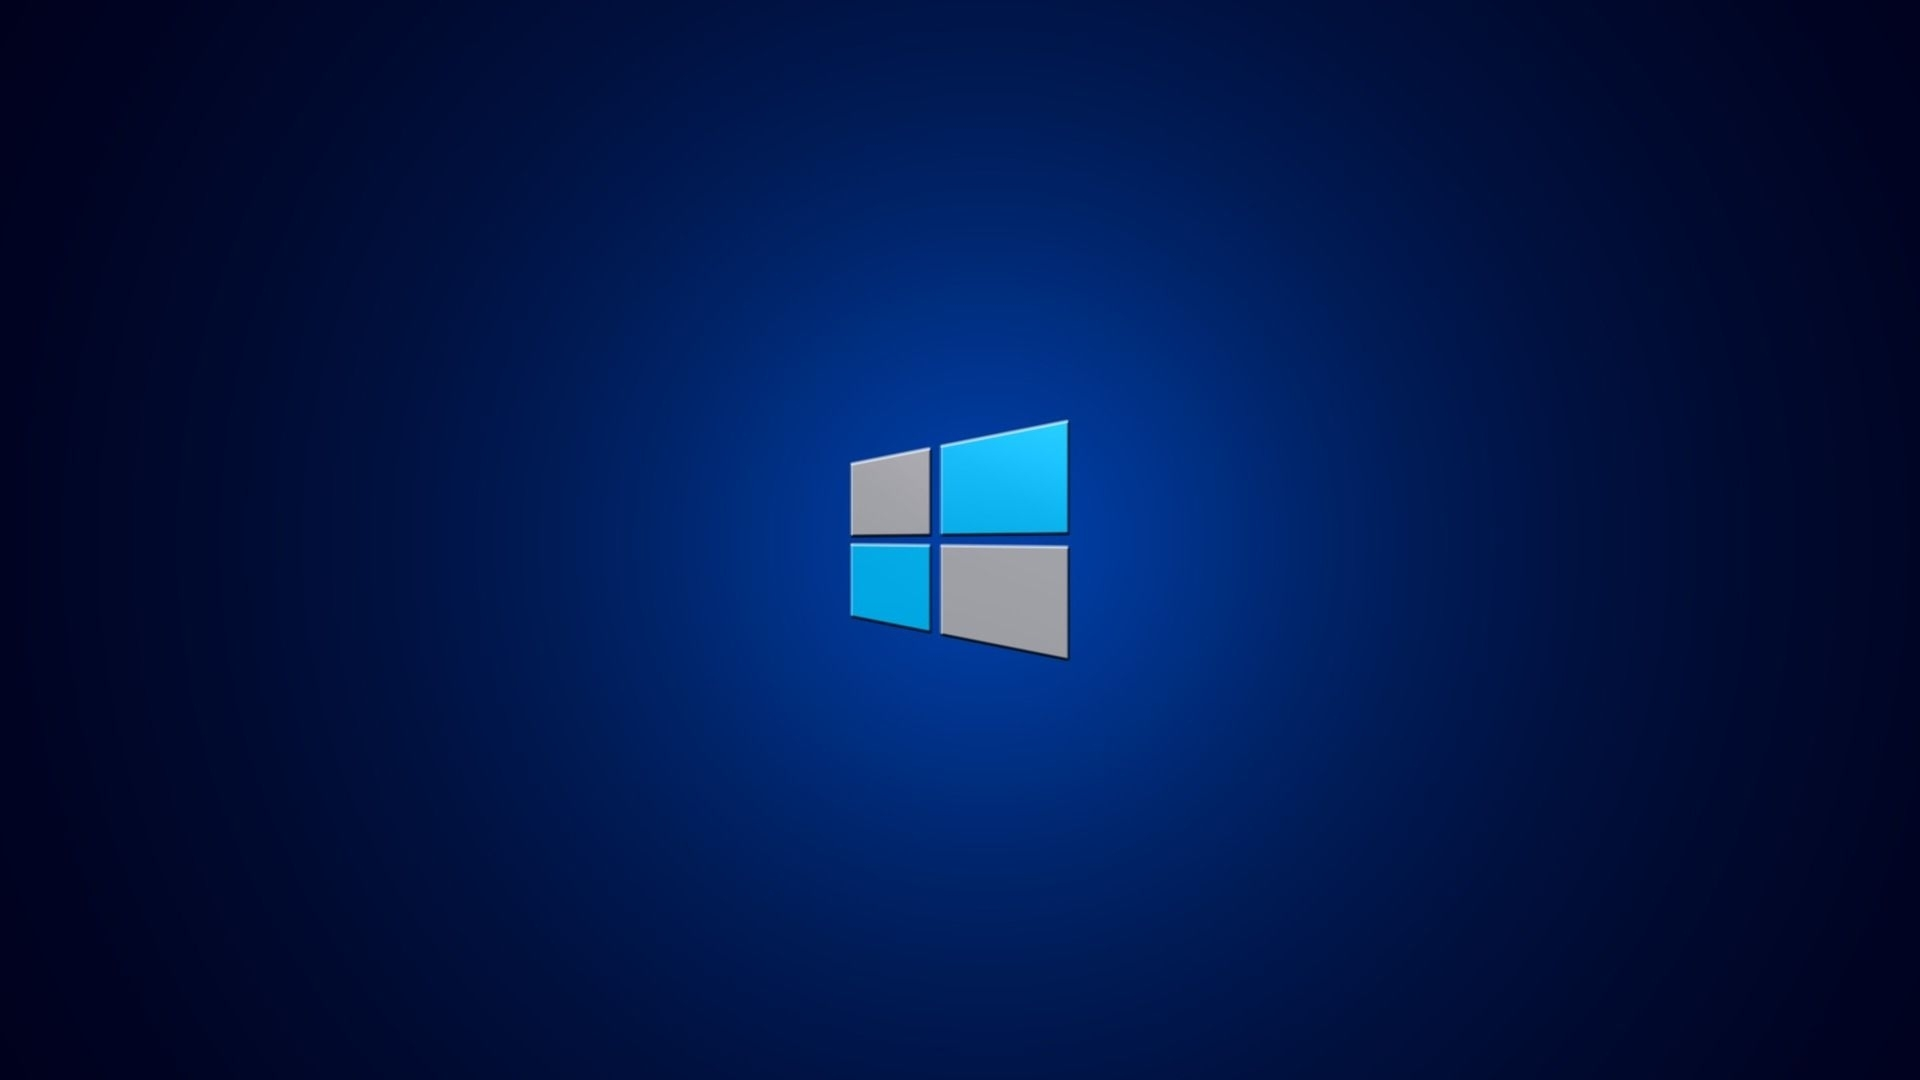 windows 8 minimal official logo 1080p hd wallpaper 1080p hd | stuff